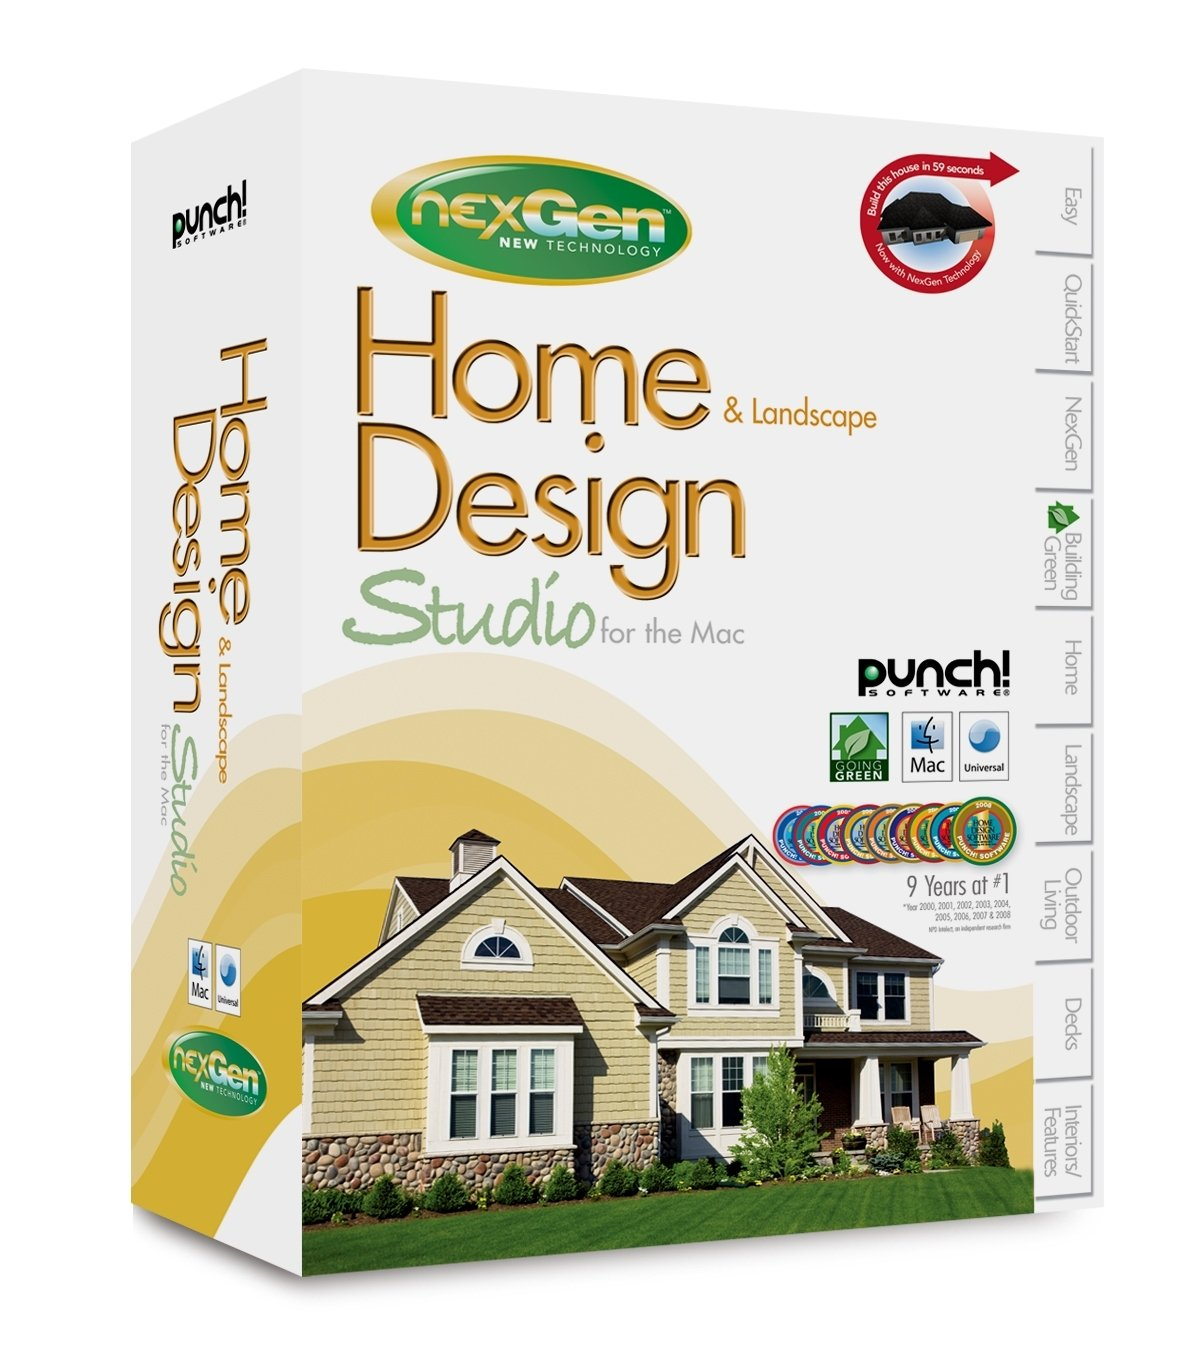 Punch home landscape design premium v17 5 gardcoste for Punch home landscape design pro 17 5 crack